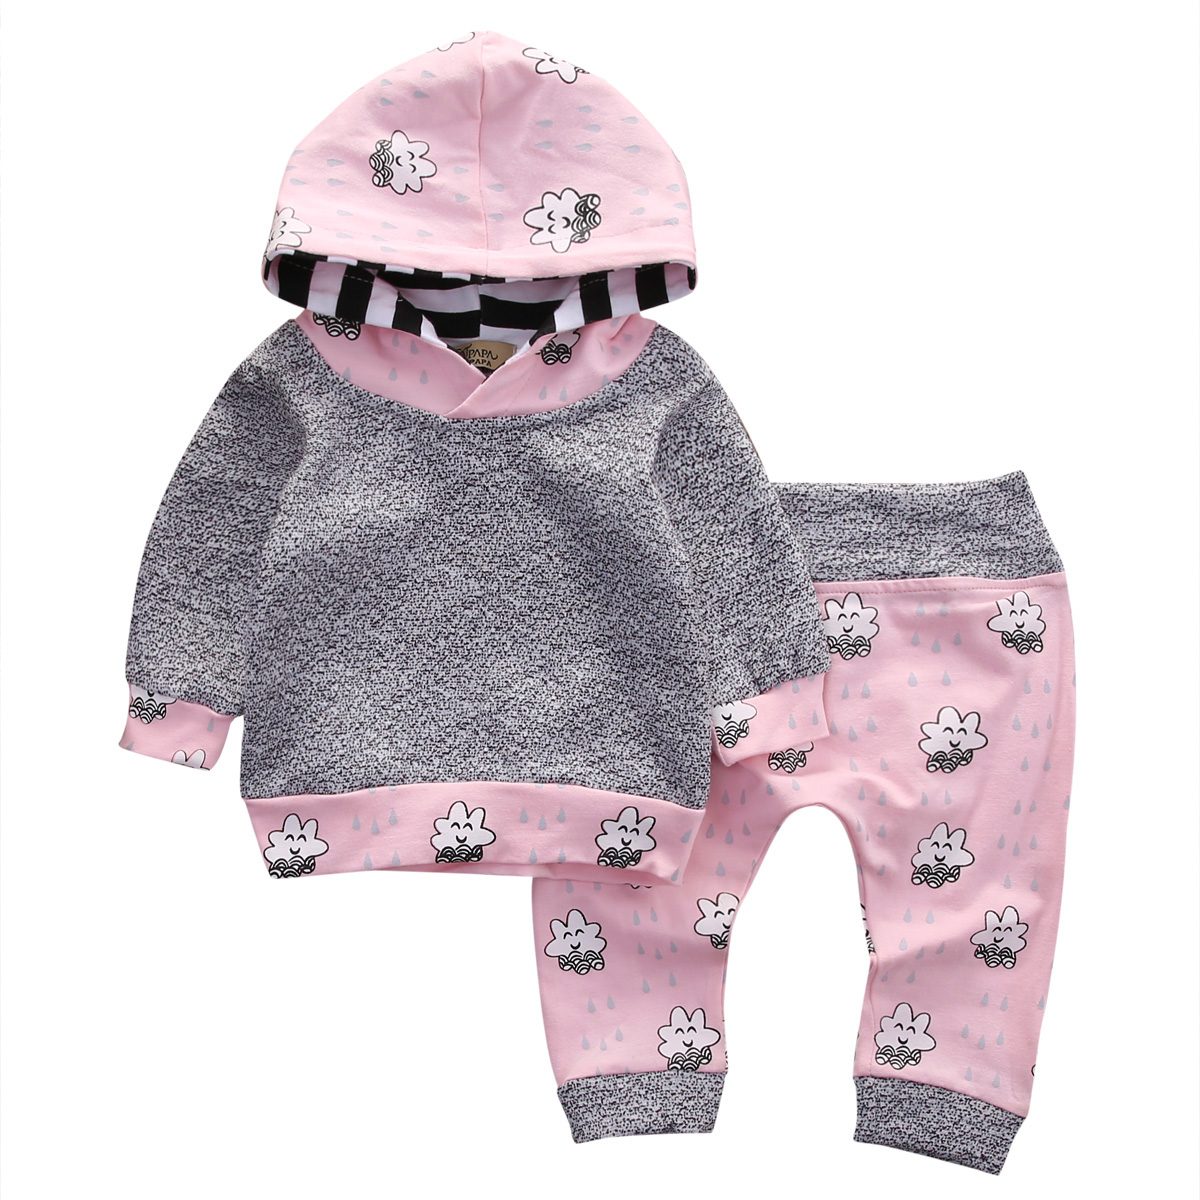 2pcs Baby Girl Clothes Autumn Spring Newborn Baby Boys Girls Long Sleeve Top Hoodie Tops+Casual Legging Pants Outfits Sets 0-24M 3pcs newborn infant baby girls clothes tassels bodysuits tops long sleeve pants headband legging baby girl outfits set